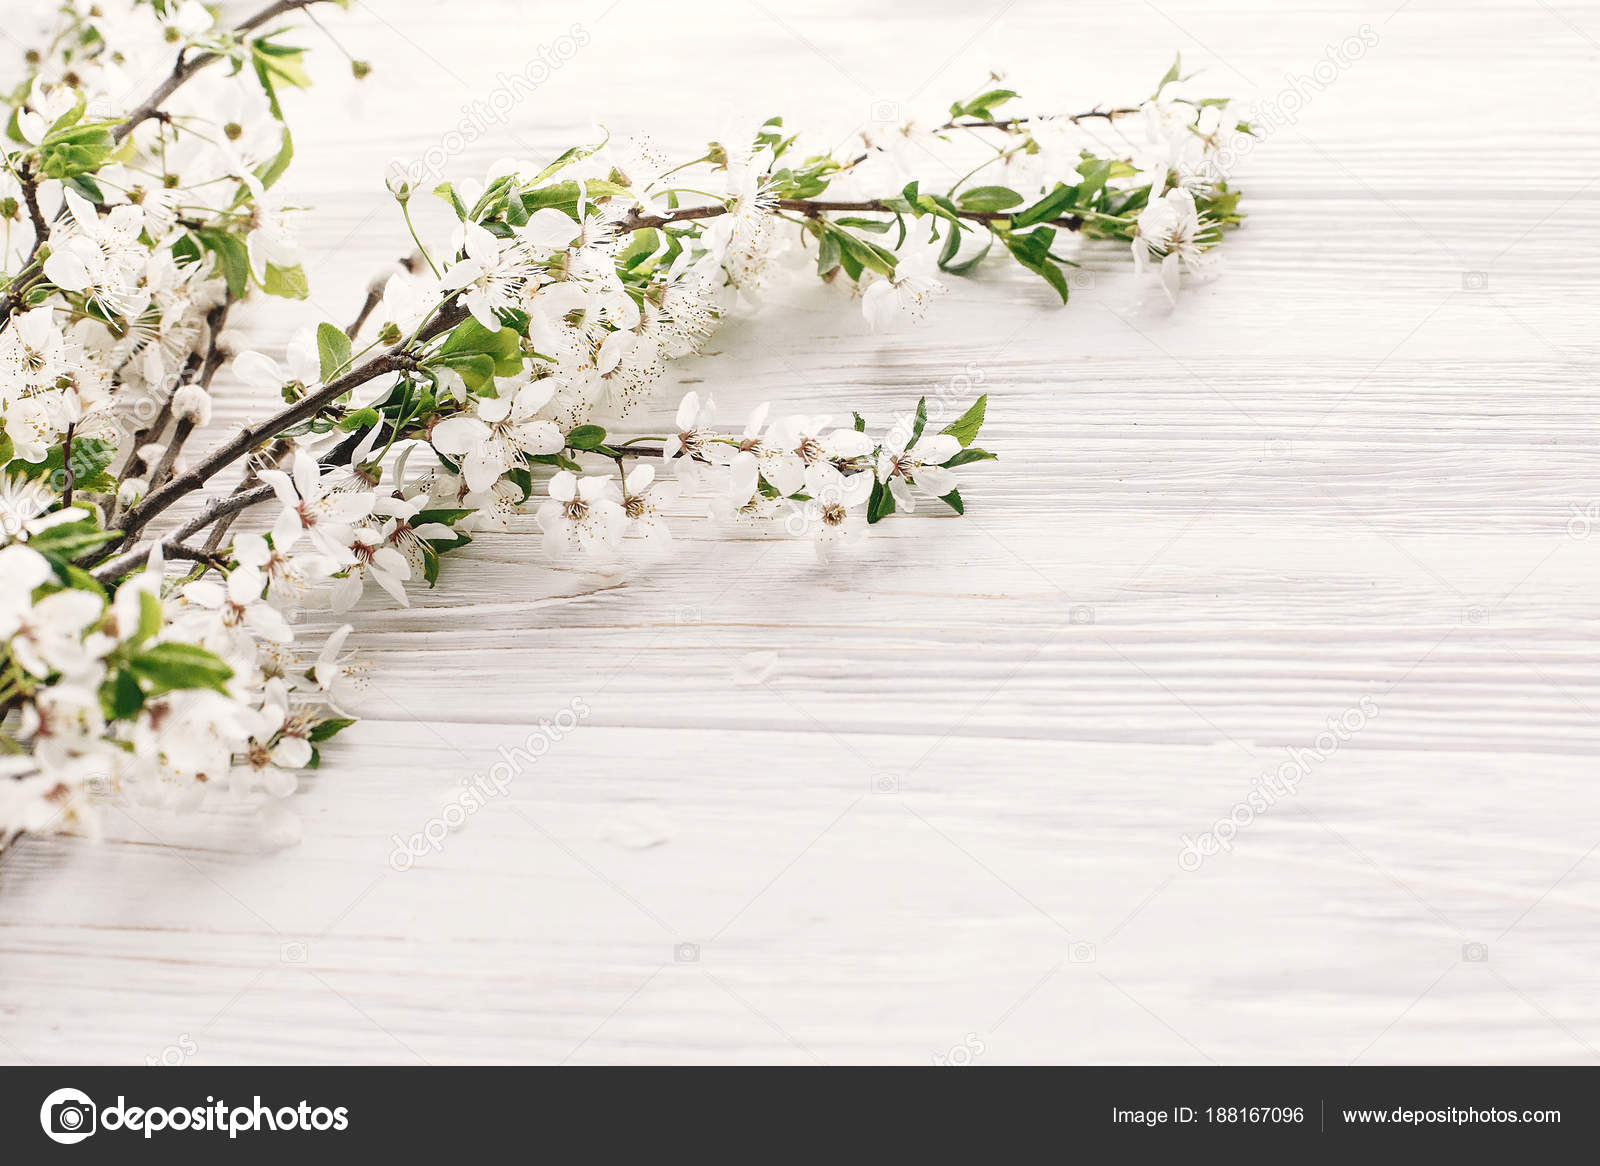 Beautiful Fresh Cherry Branches White Flowers Rustic Wooden